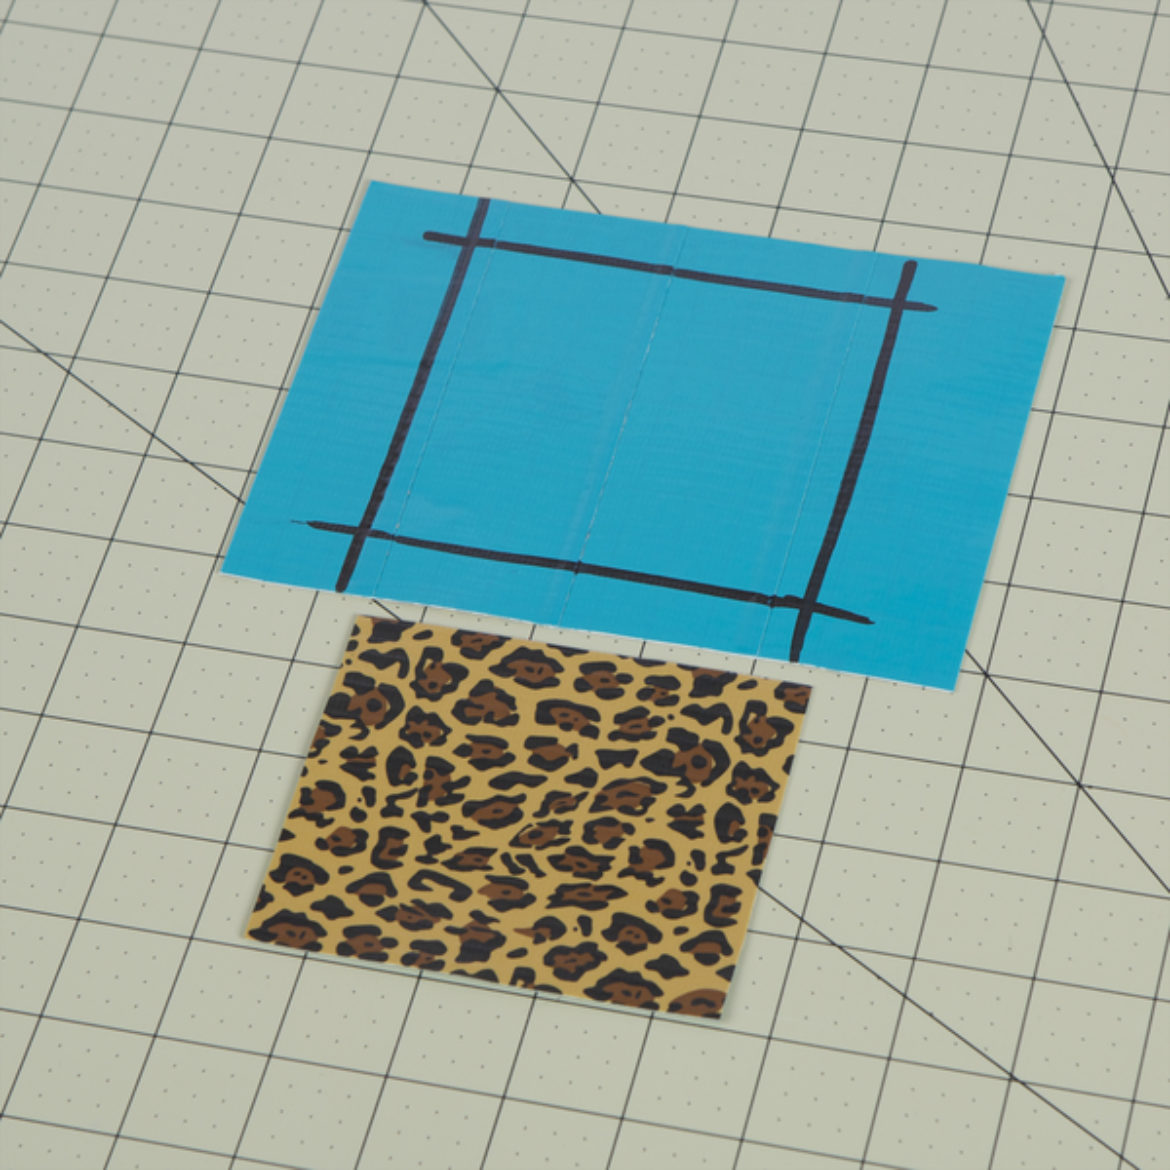 Piece of Duck Tape fabric cut into a square